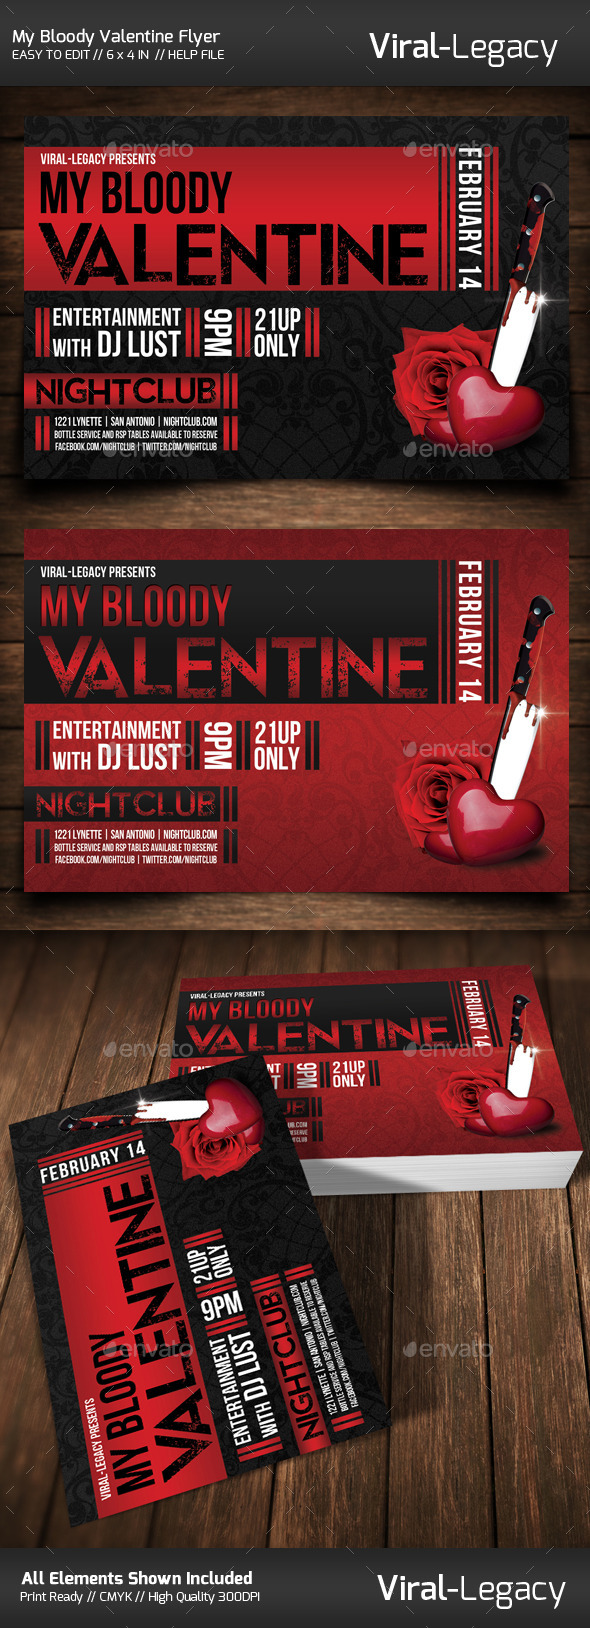 My Bloody Valentine Flyer